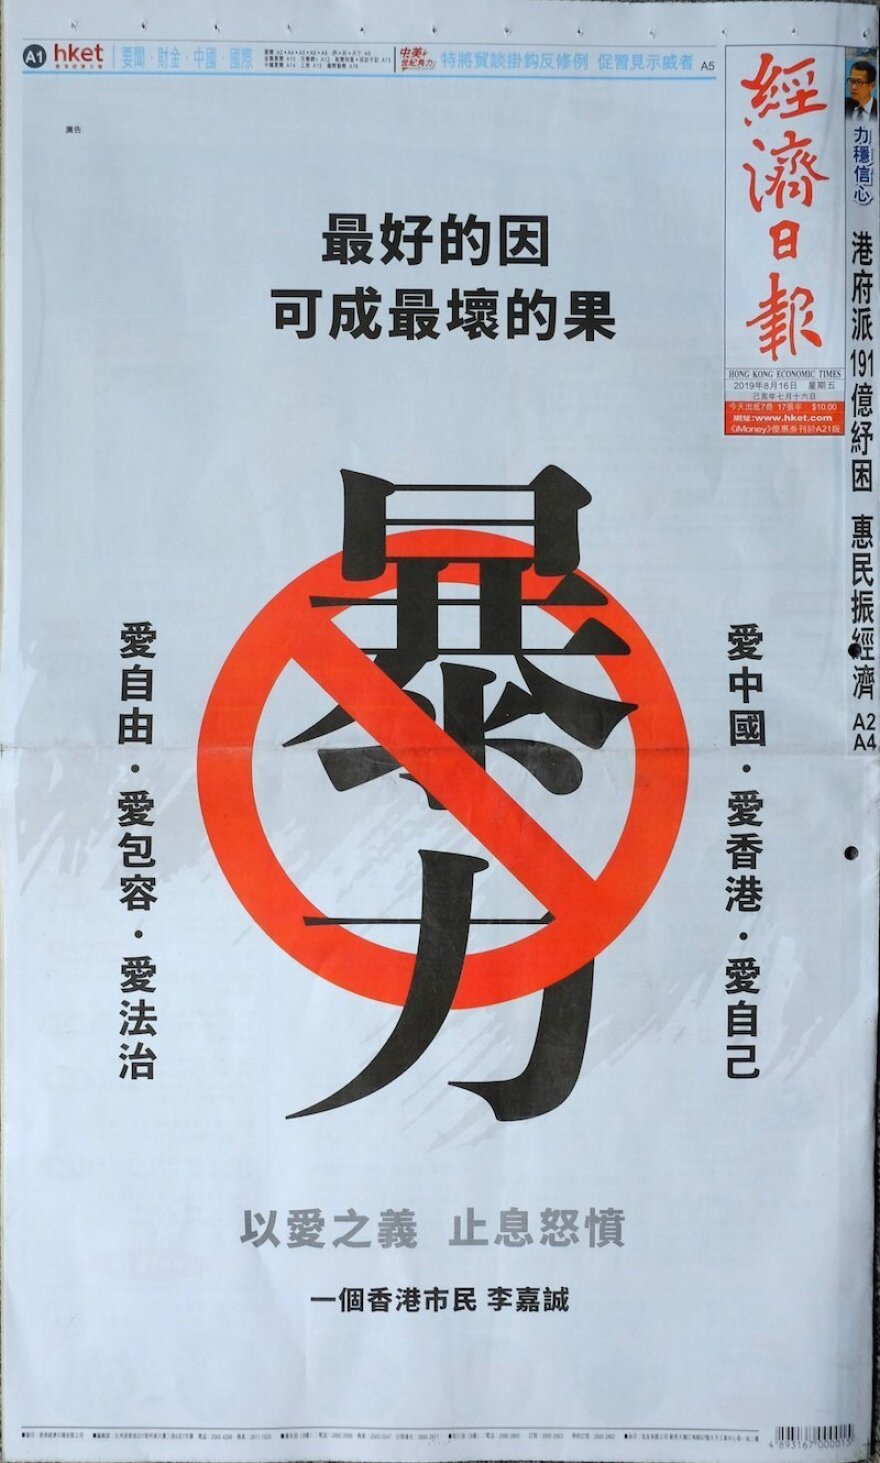 """Here's the advertisement in the <em>Hong Kong Economic Times</em>. Circling the central message, """"no violence,"""" is a cluster of statements that seem to say little — but could in fact conceal a bold hidden message."""